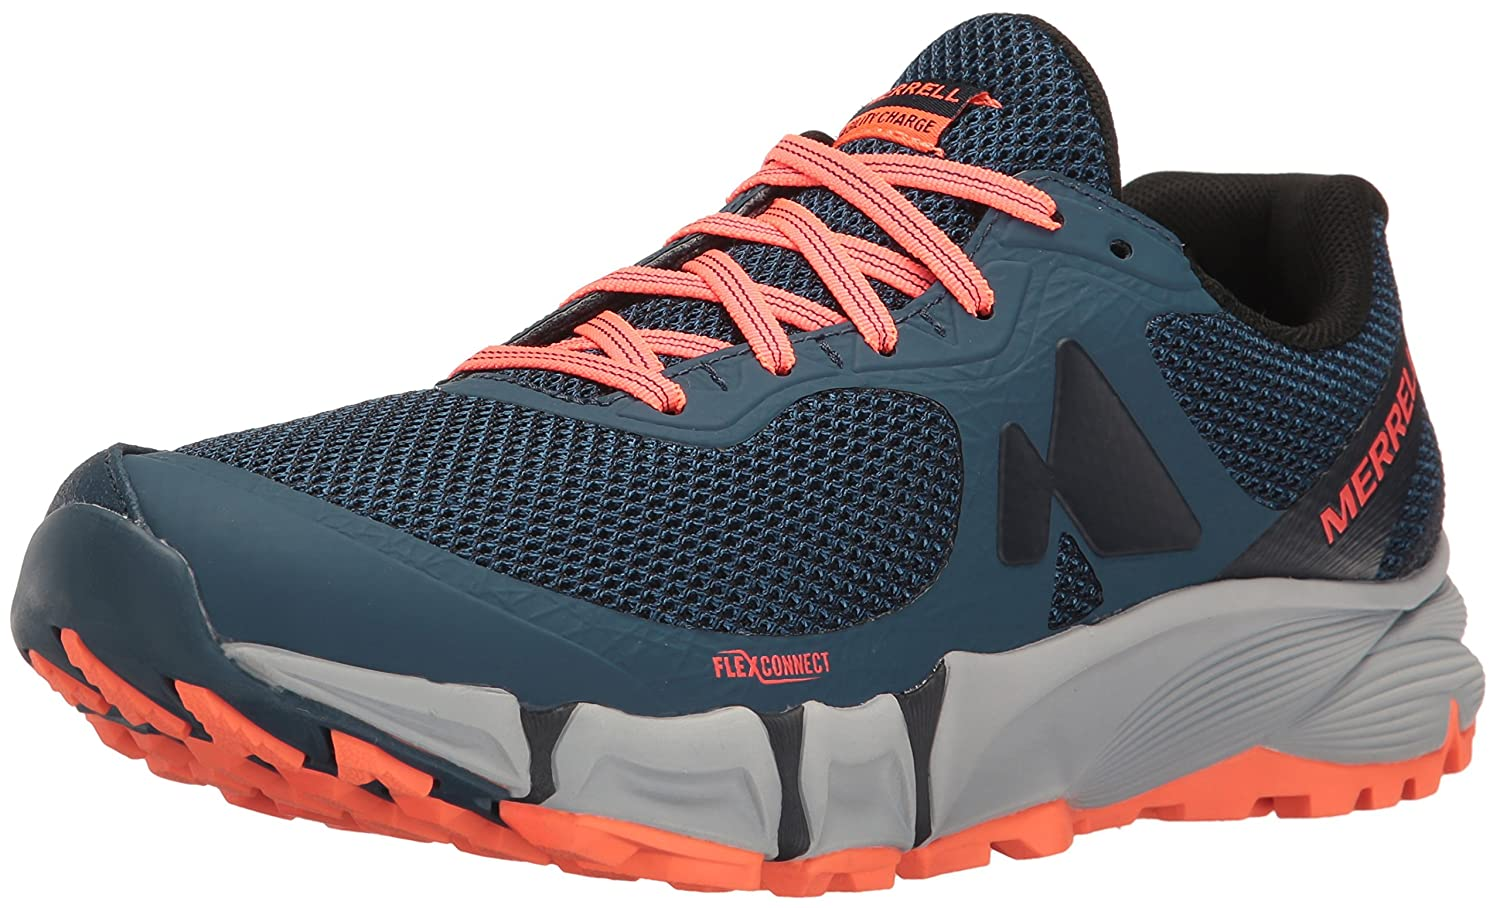 Merrell Women's Agility Charge Flex Trail Runner B01HHA1T00 8 B(M) US|Navy